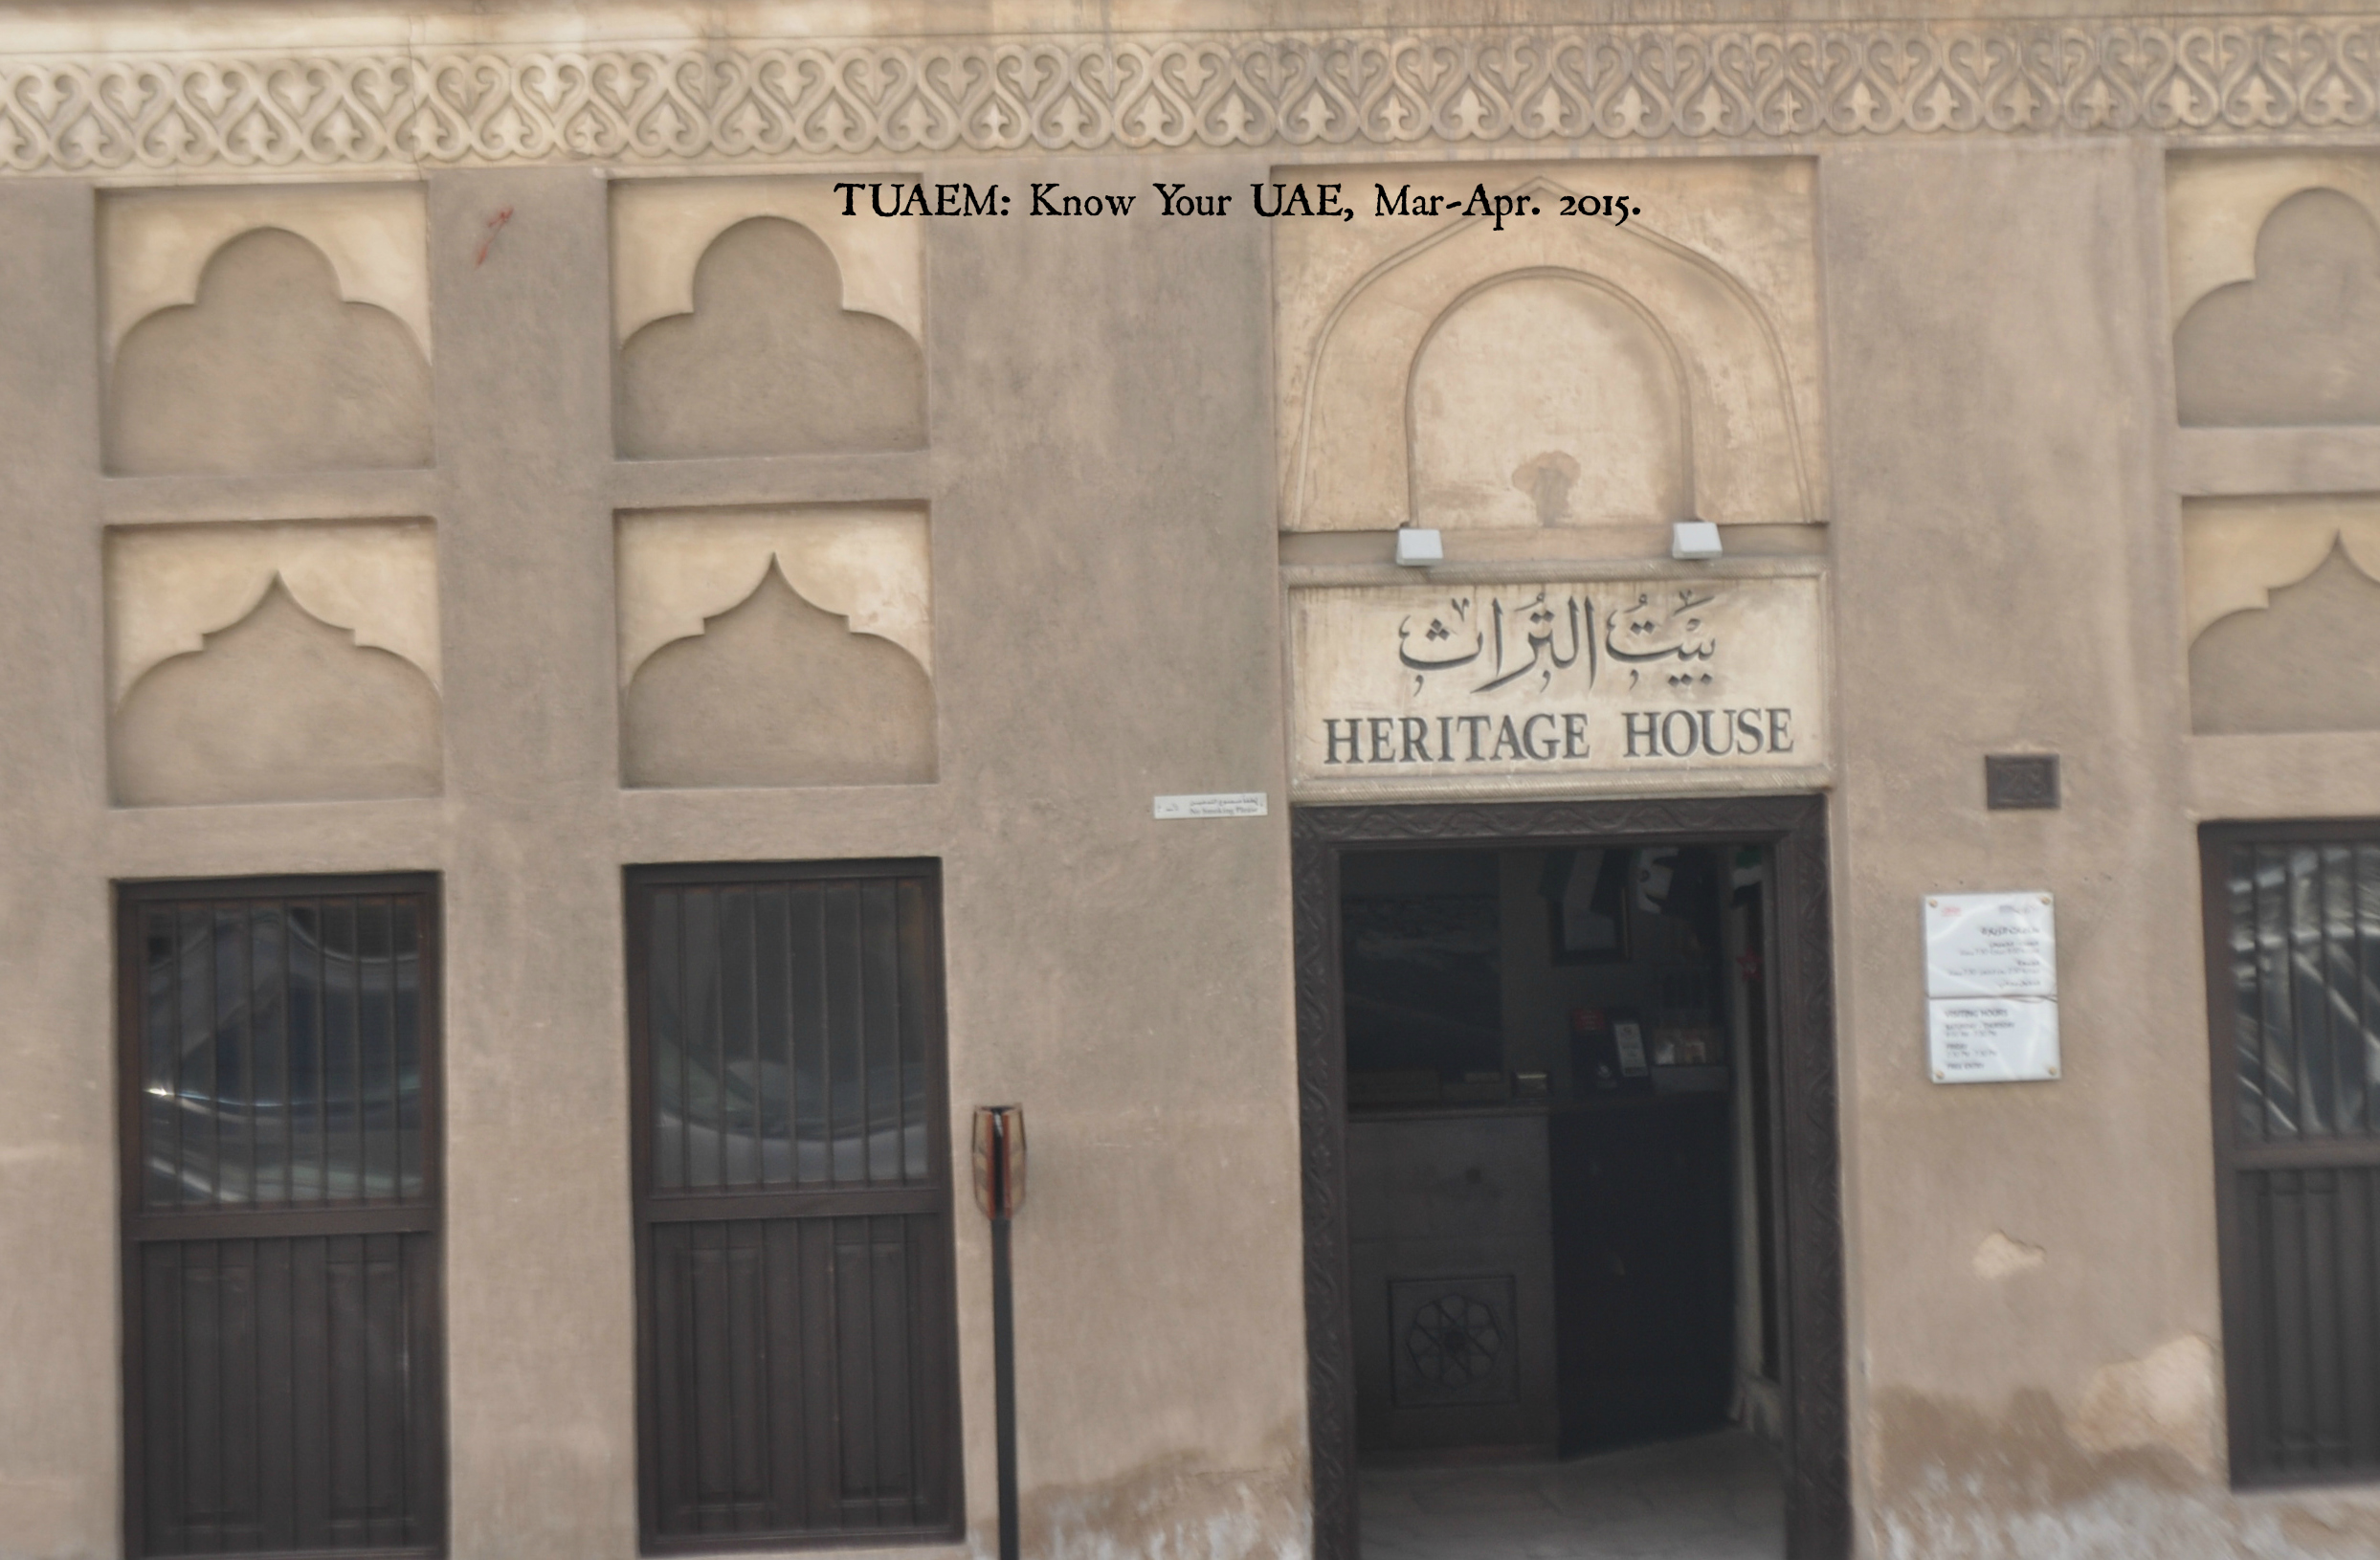 Heritage house museum in dubai teach middle east magazine Style house fashion trading company uae